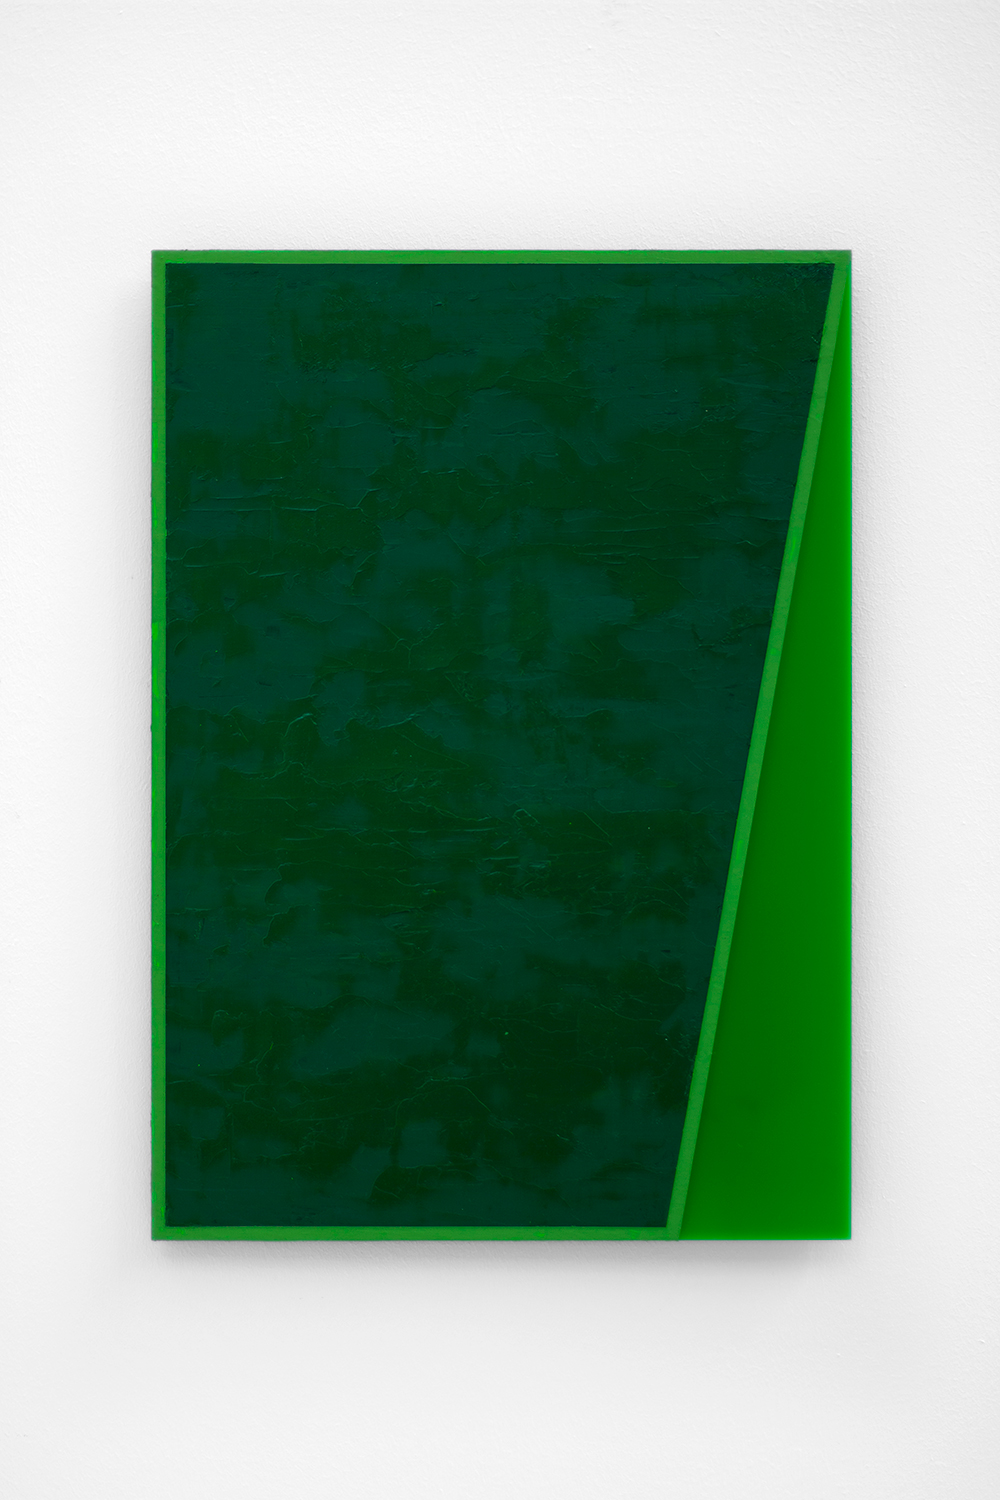 The Green Series nr. 7 42 x 29,7 cm ( A3 Size ) Oil and arylic on green perspex